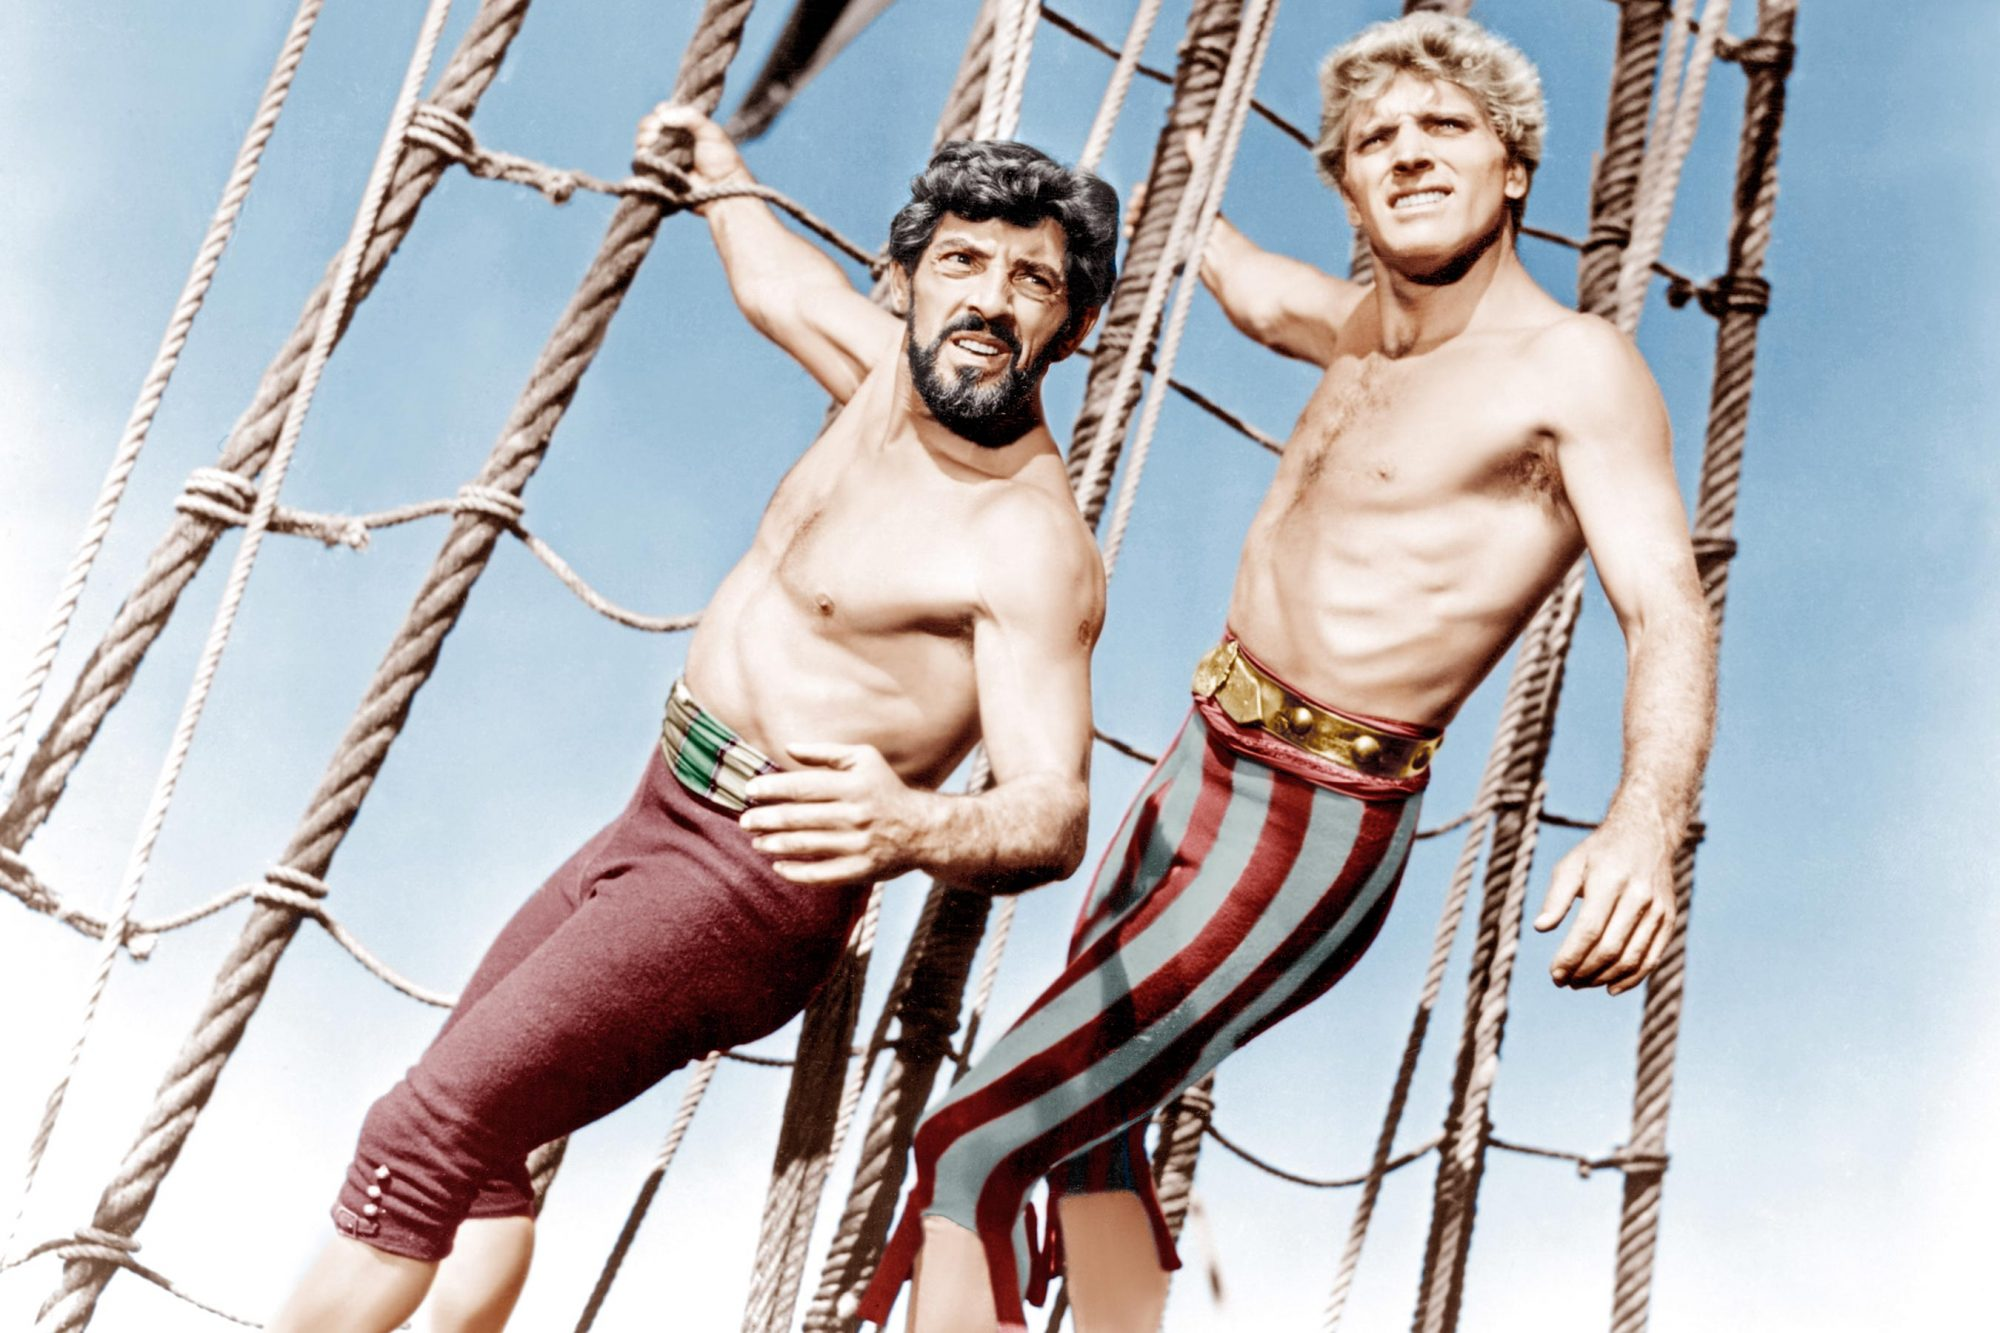 THE CRIMSON PIRATE, from left: Nick Cravat, Burt Lancaster, 1952